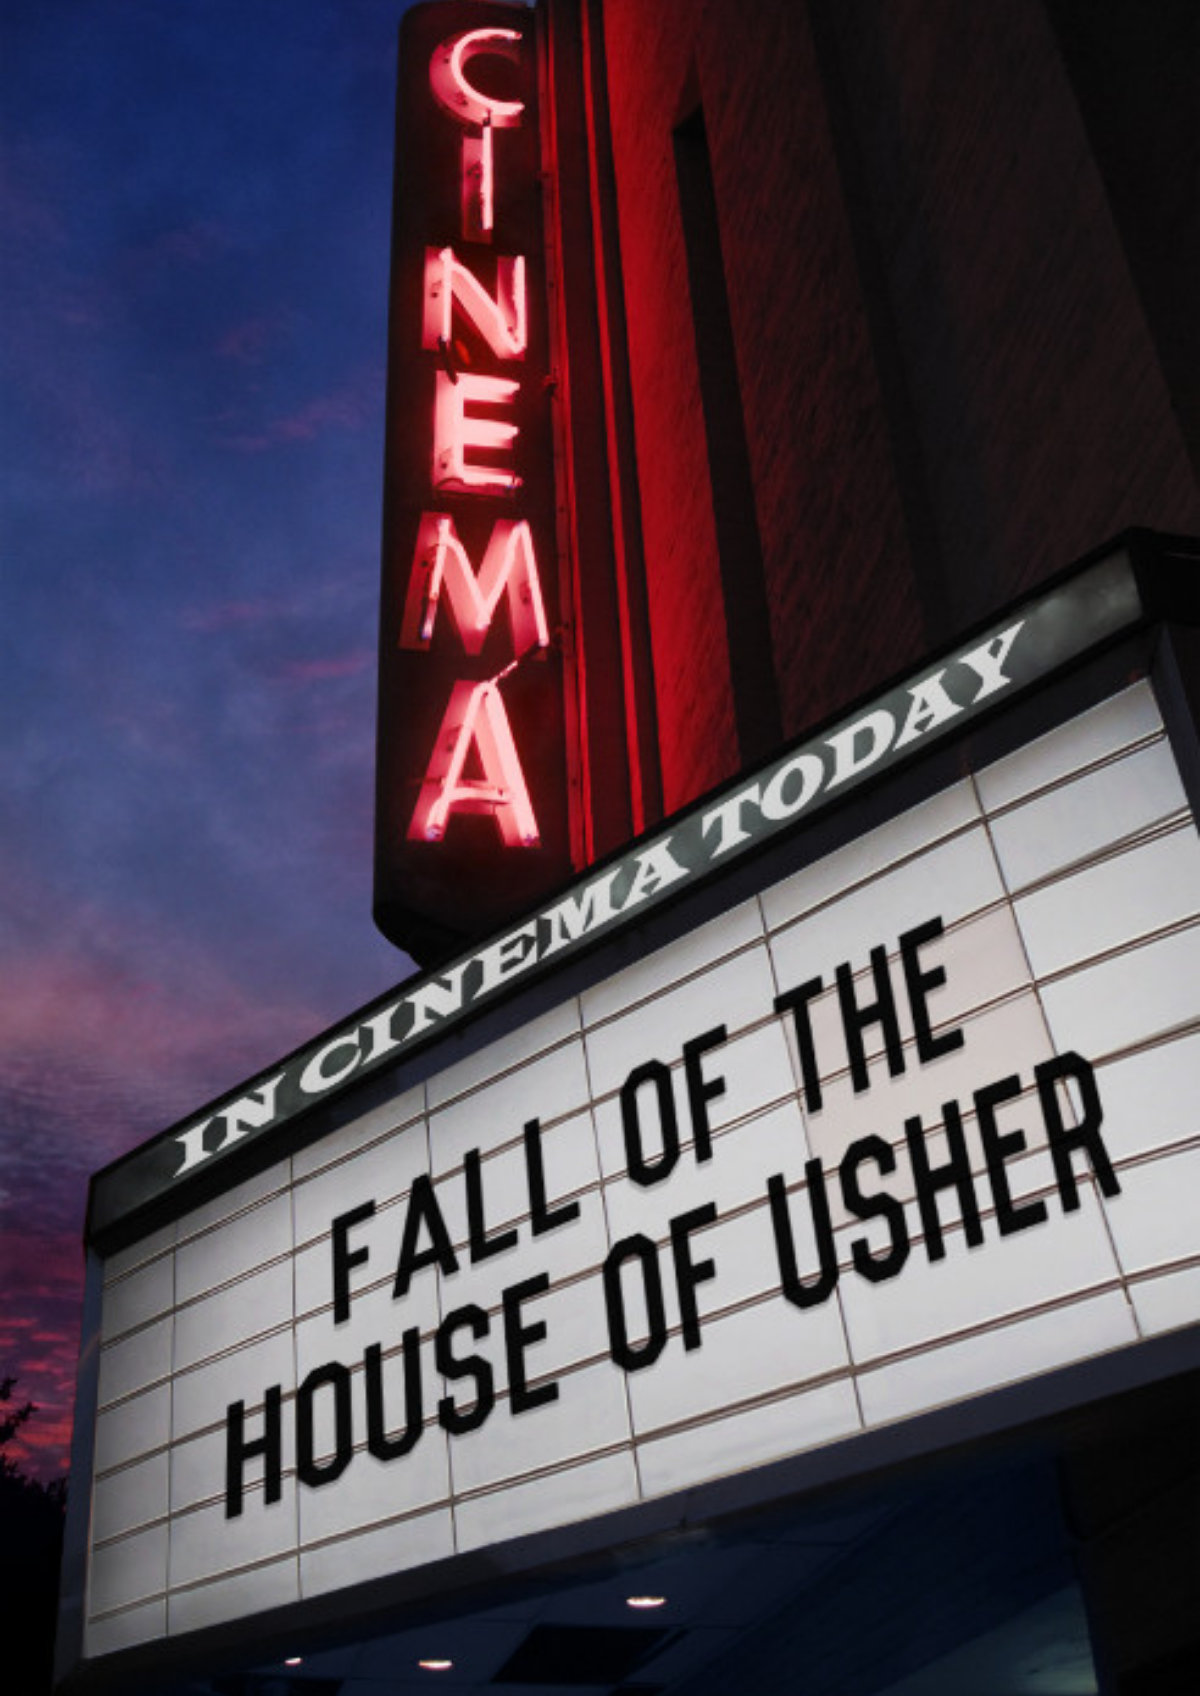 'The Fall Of The House Of Usher' movie poster